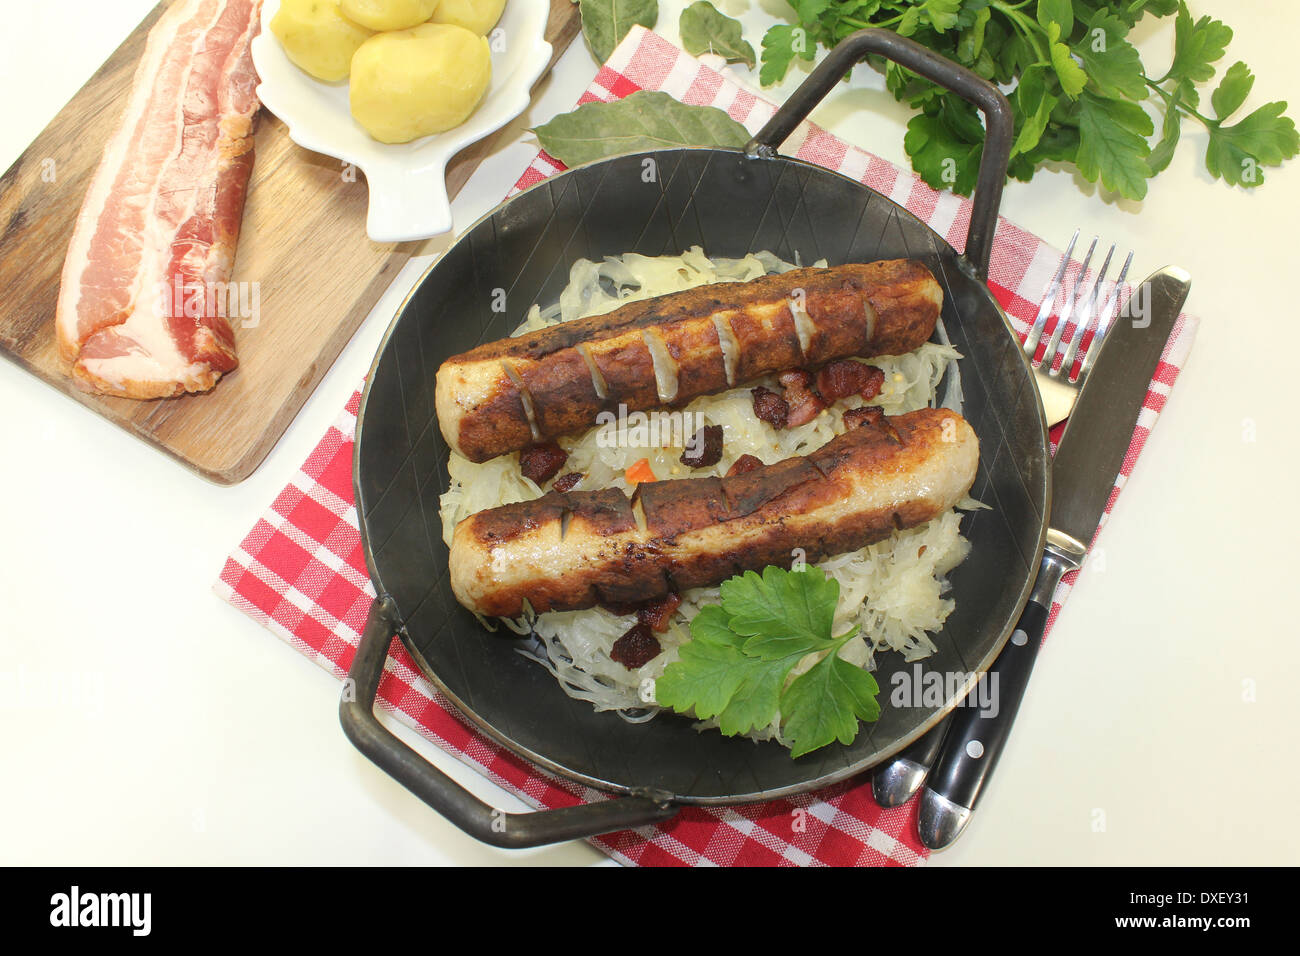 a pan with sourcrout and fried sausage Stock Photo